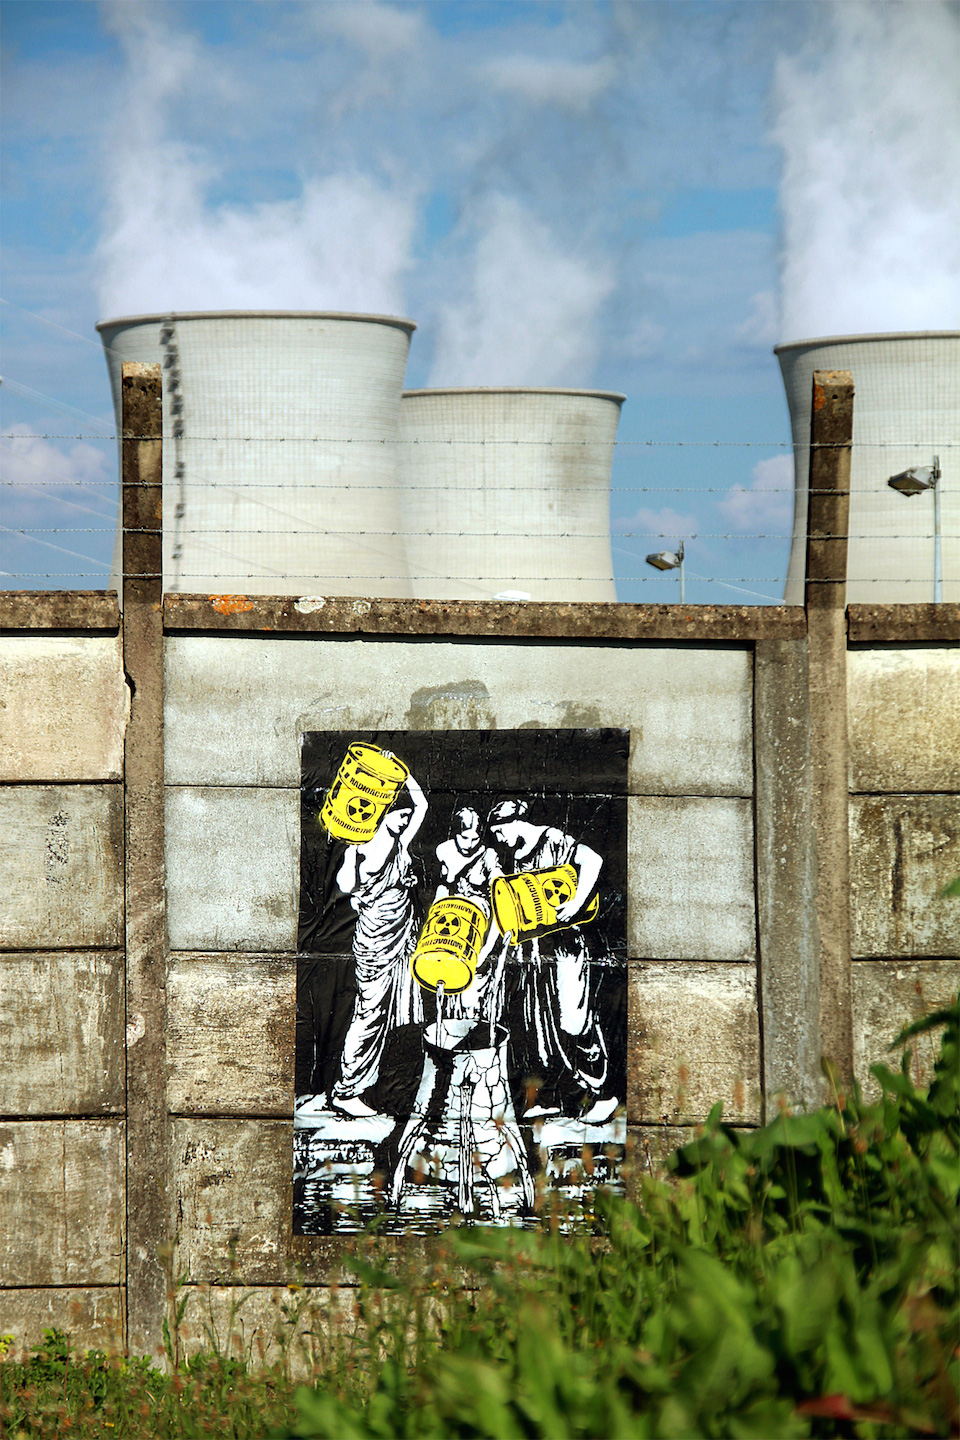 Street Art by Goin at Bugey Nuclear Power Plant, France - Fukushima danaïds 1